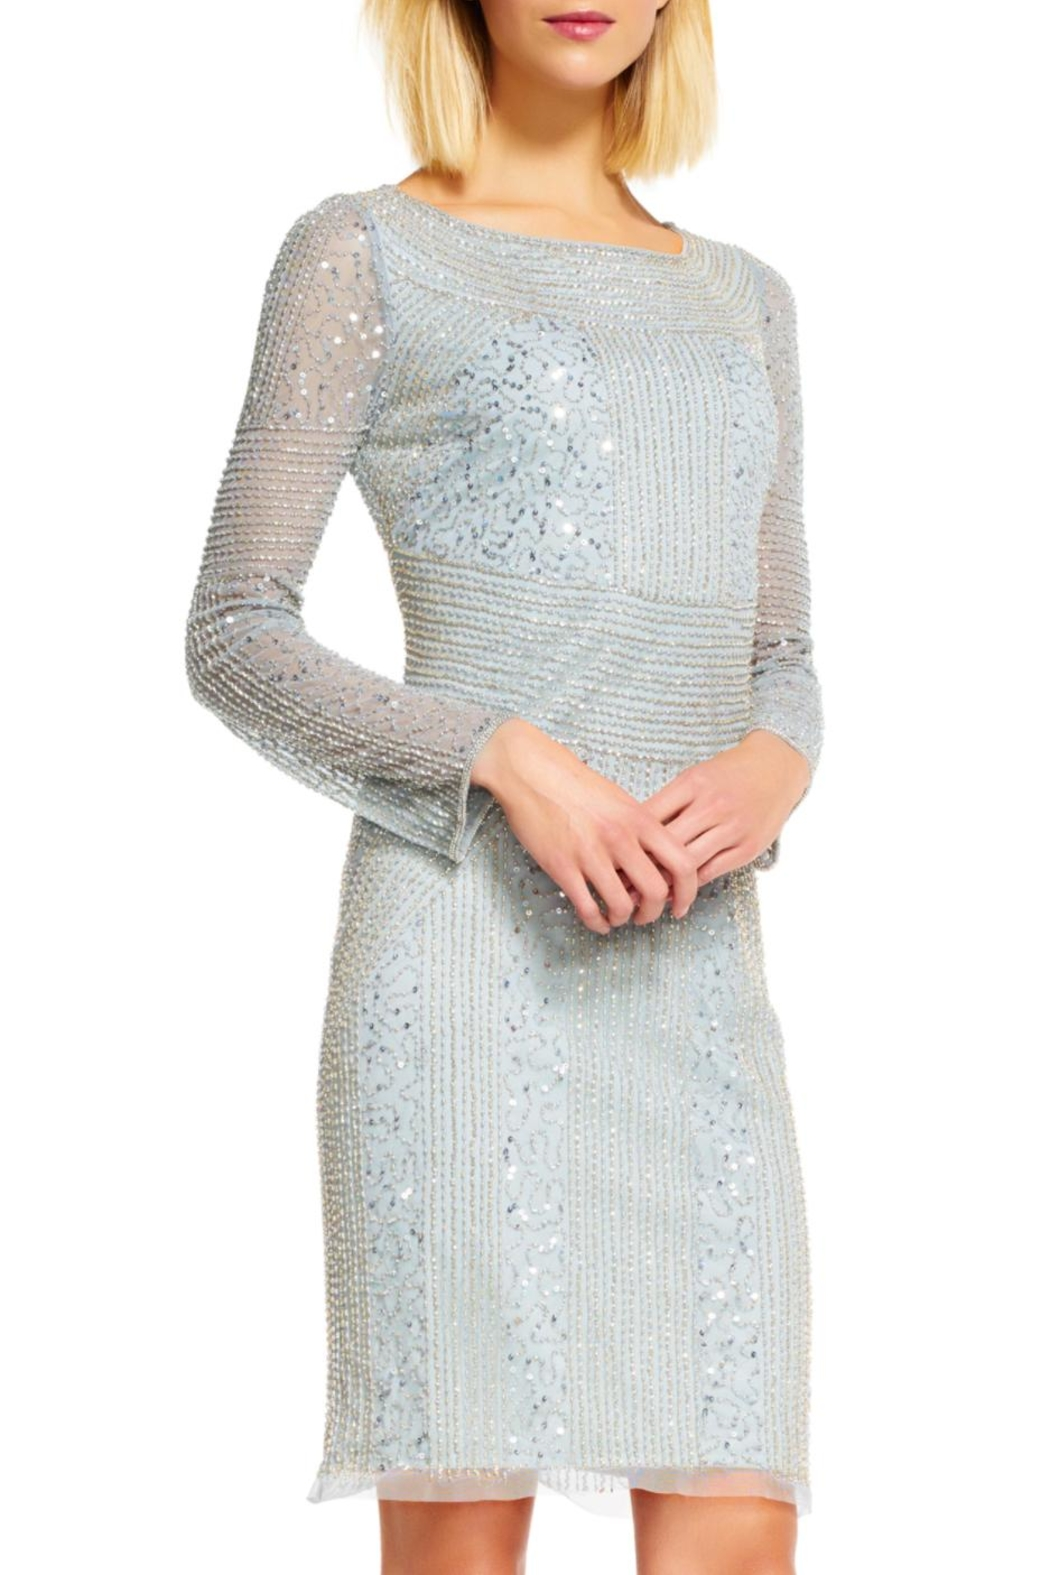 Adrianna Papell Beaded Sheath Dress - Main Image